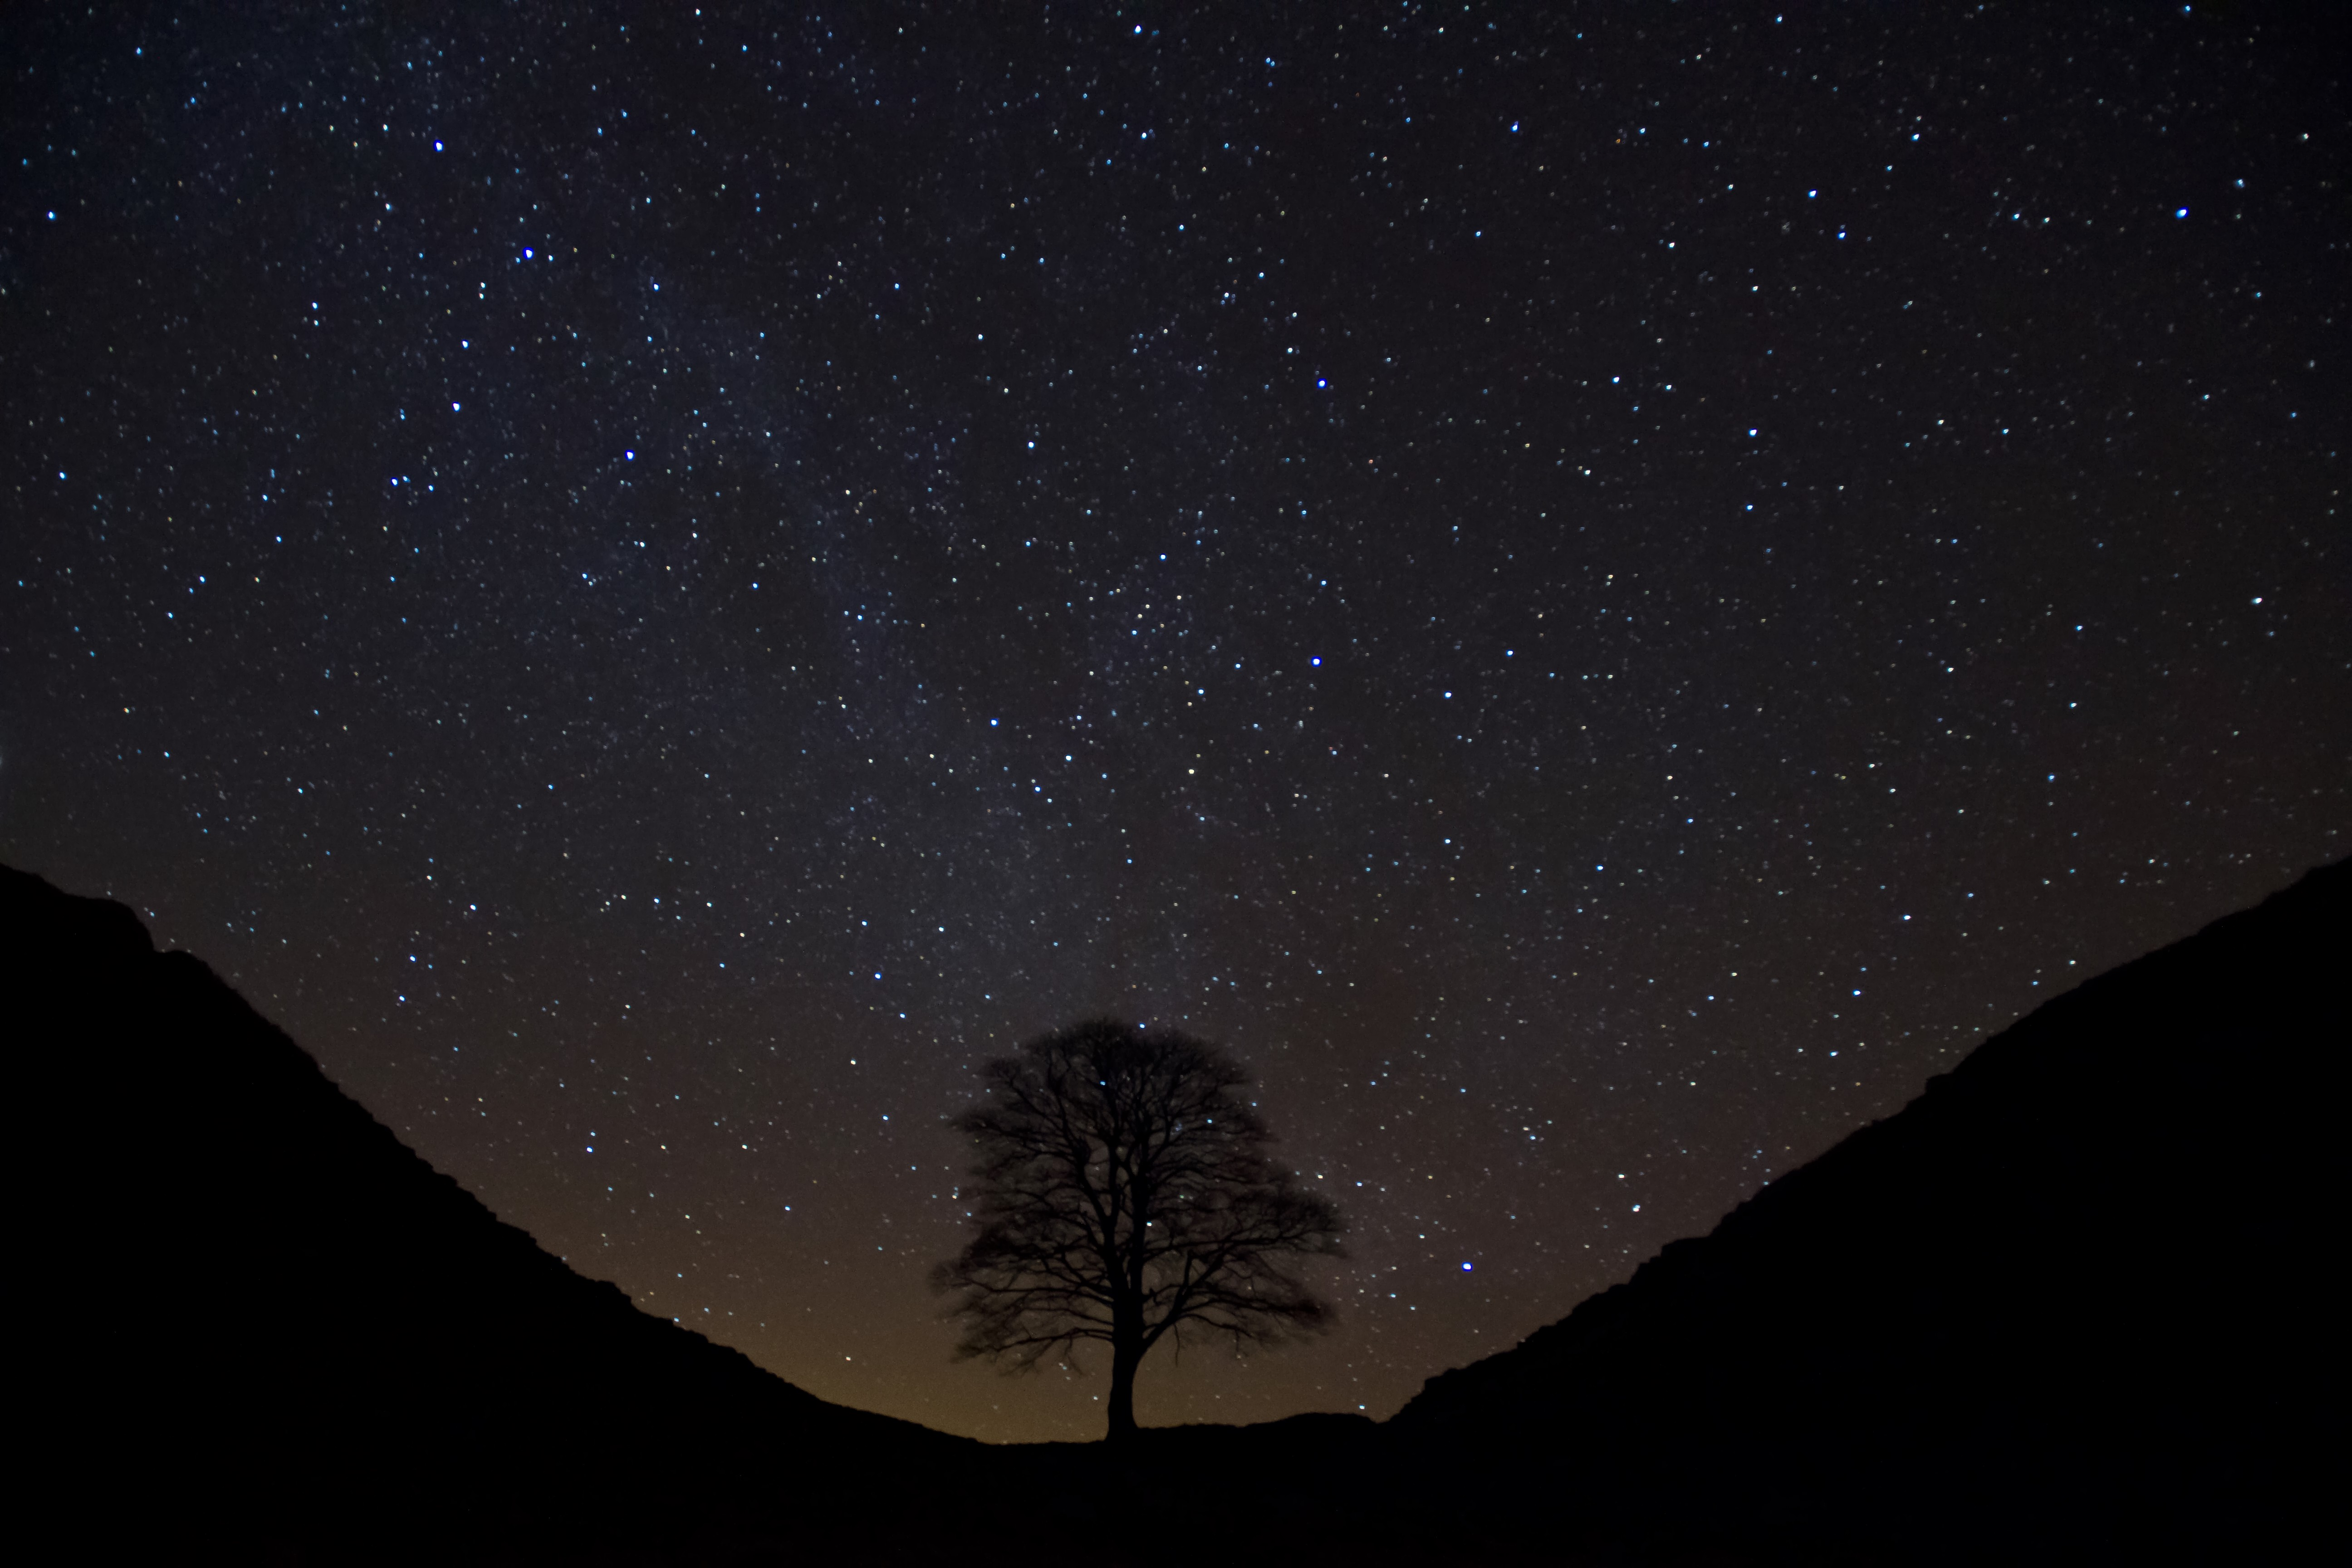 Sycamore Gap credit Cain Scrimgeour